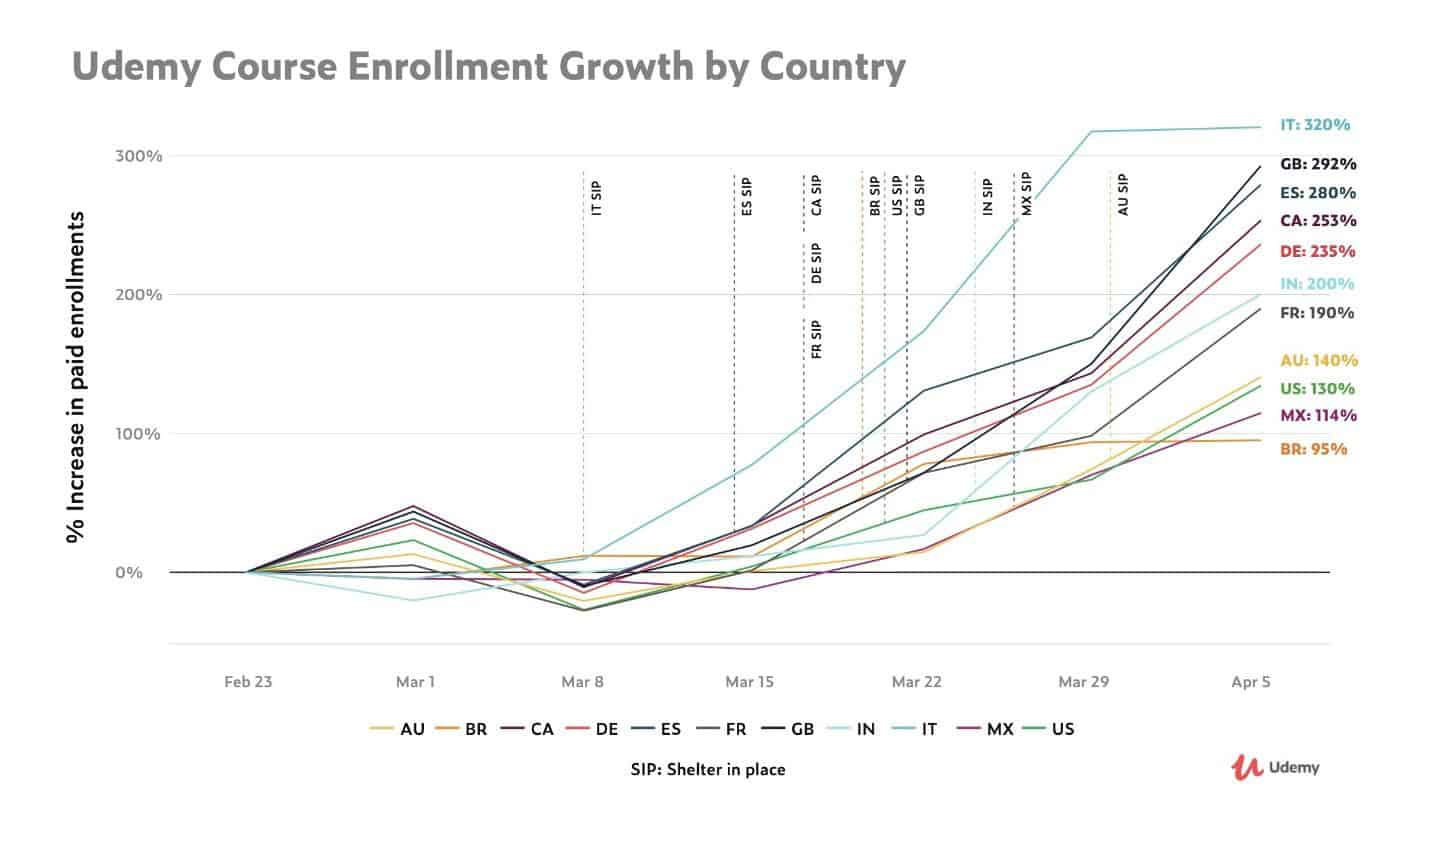 Udemy report showing increased demands for online education worldwide due to the pandemic